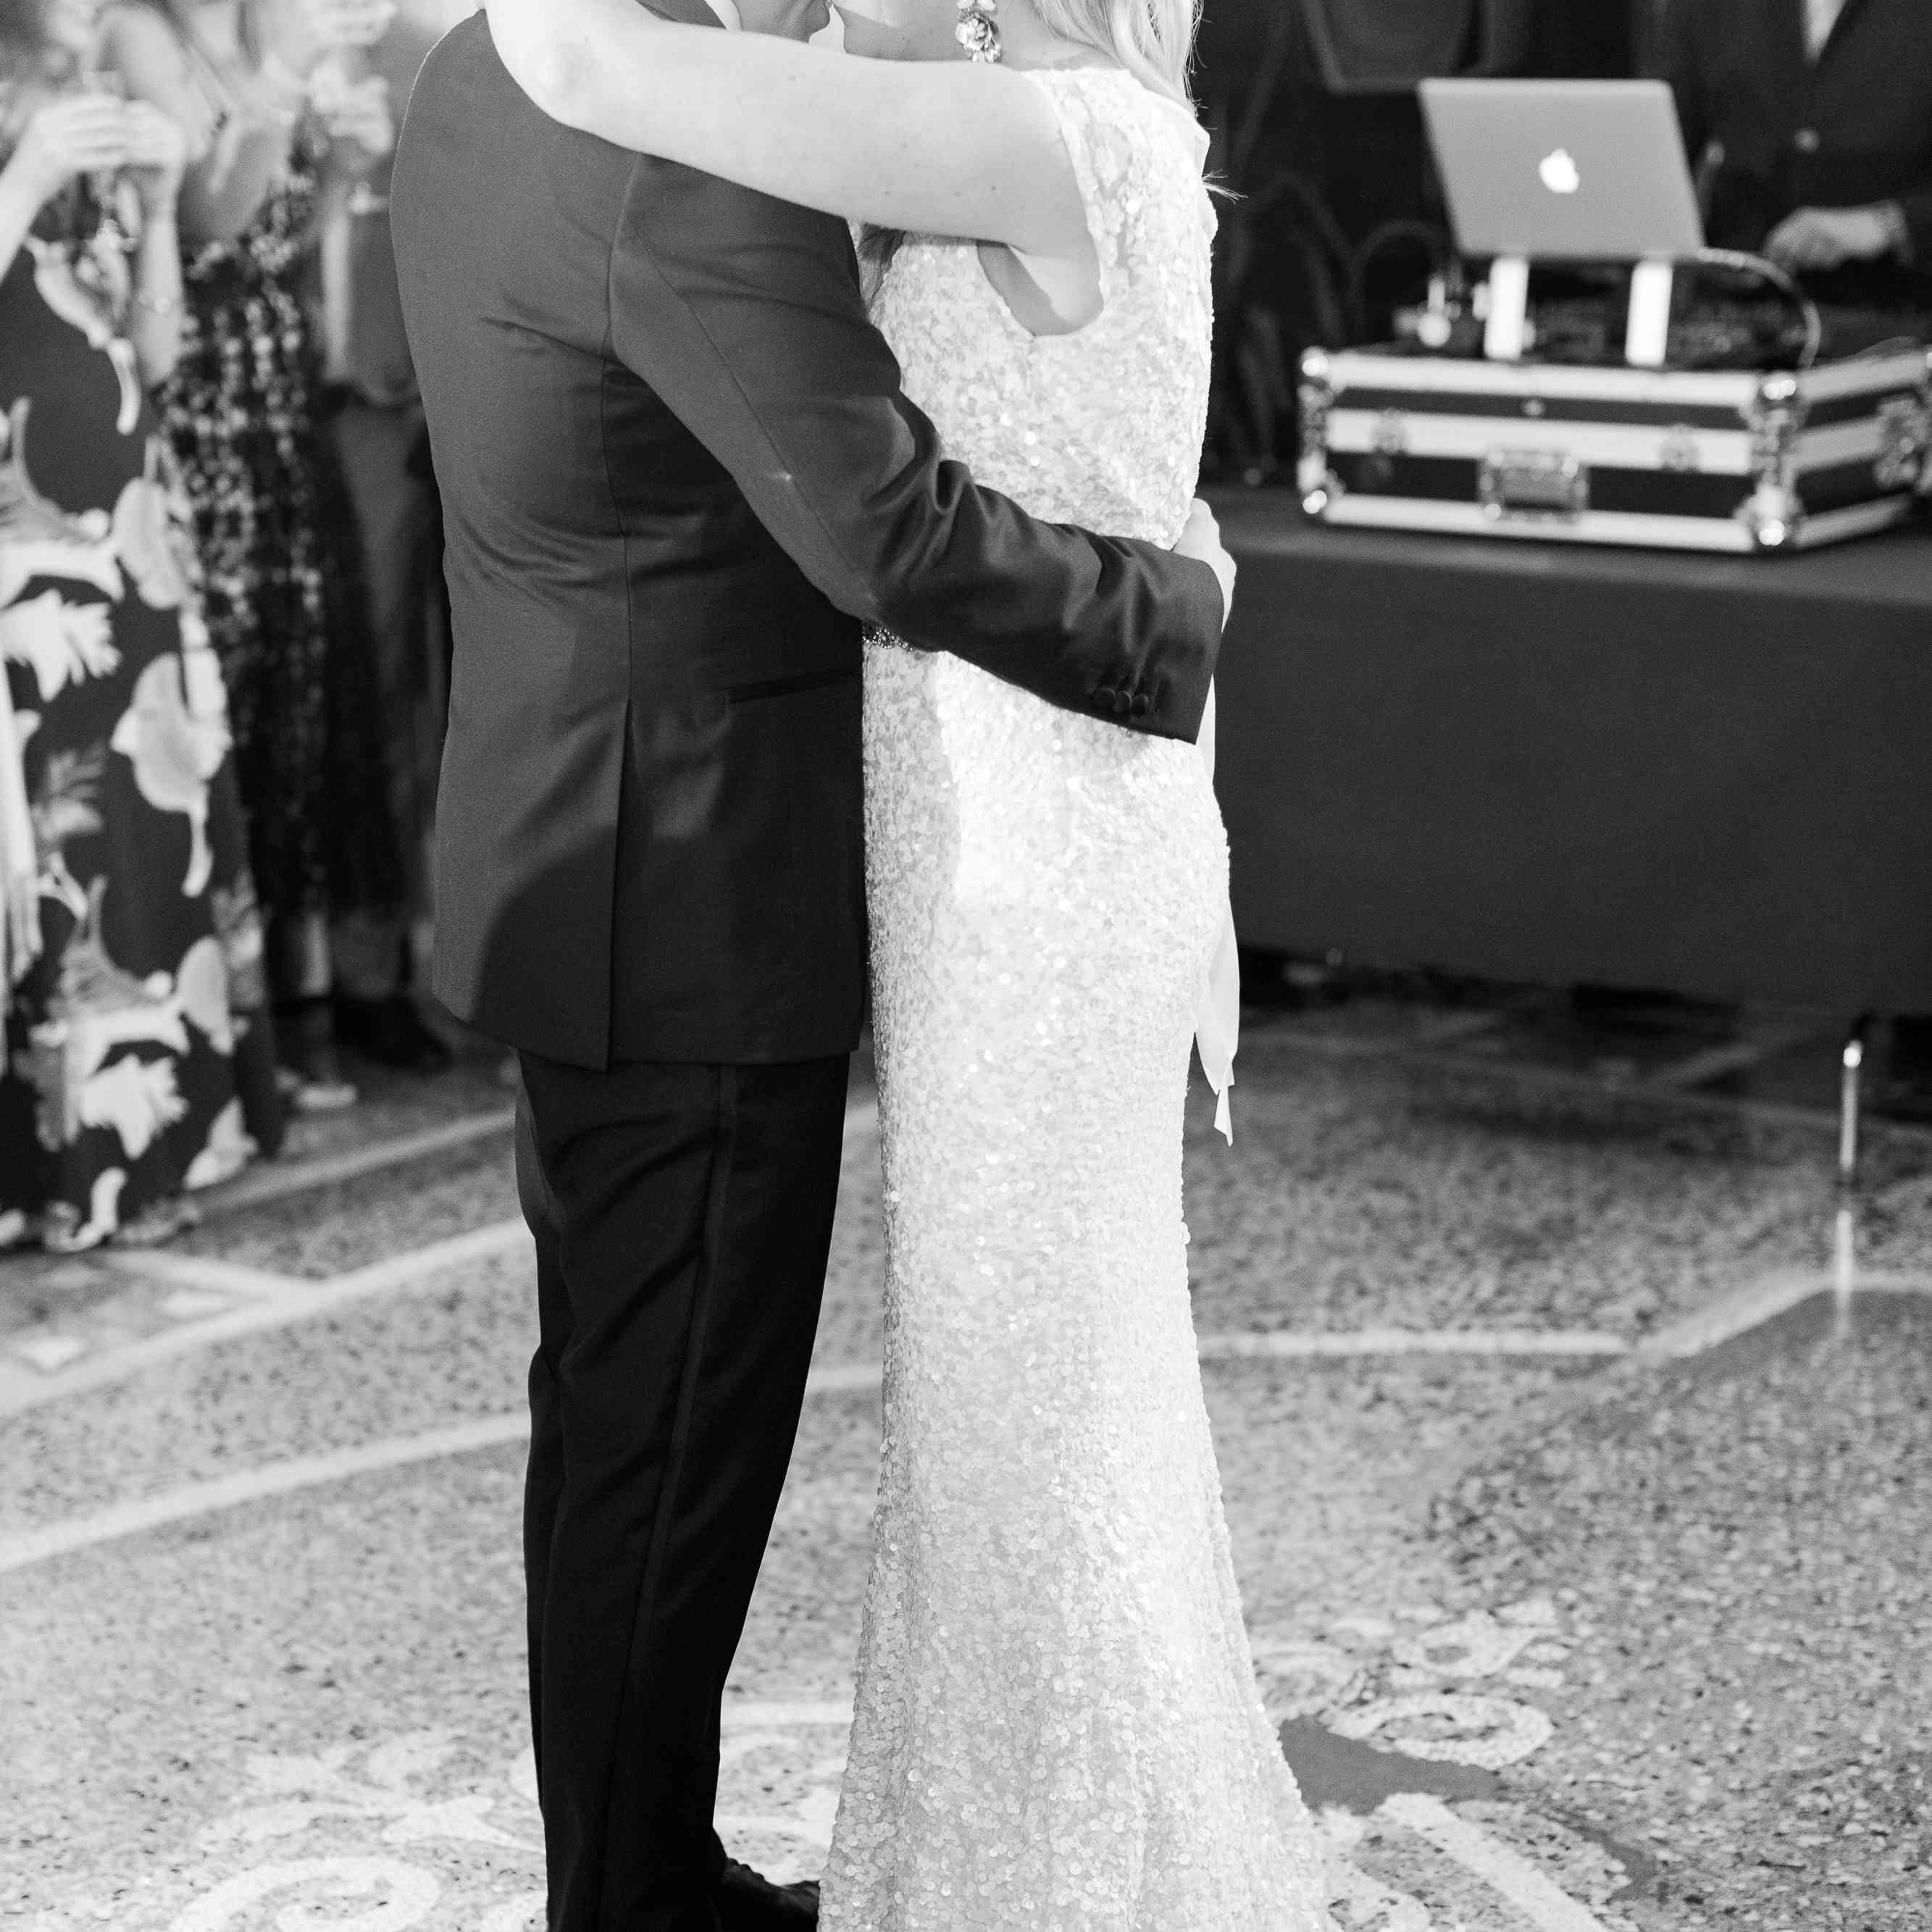 <p>Couple dances together at wedding</p><br><br>